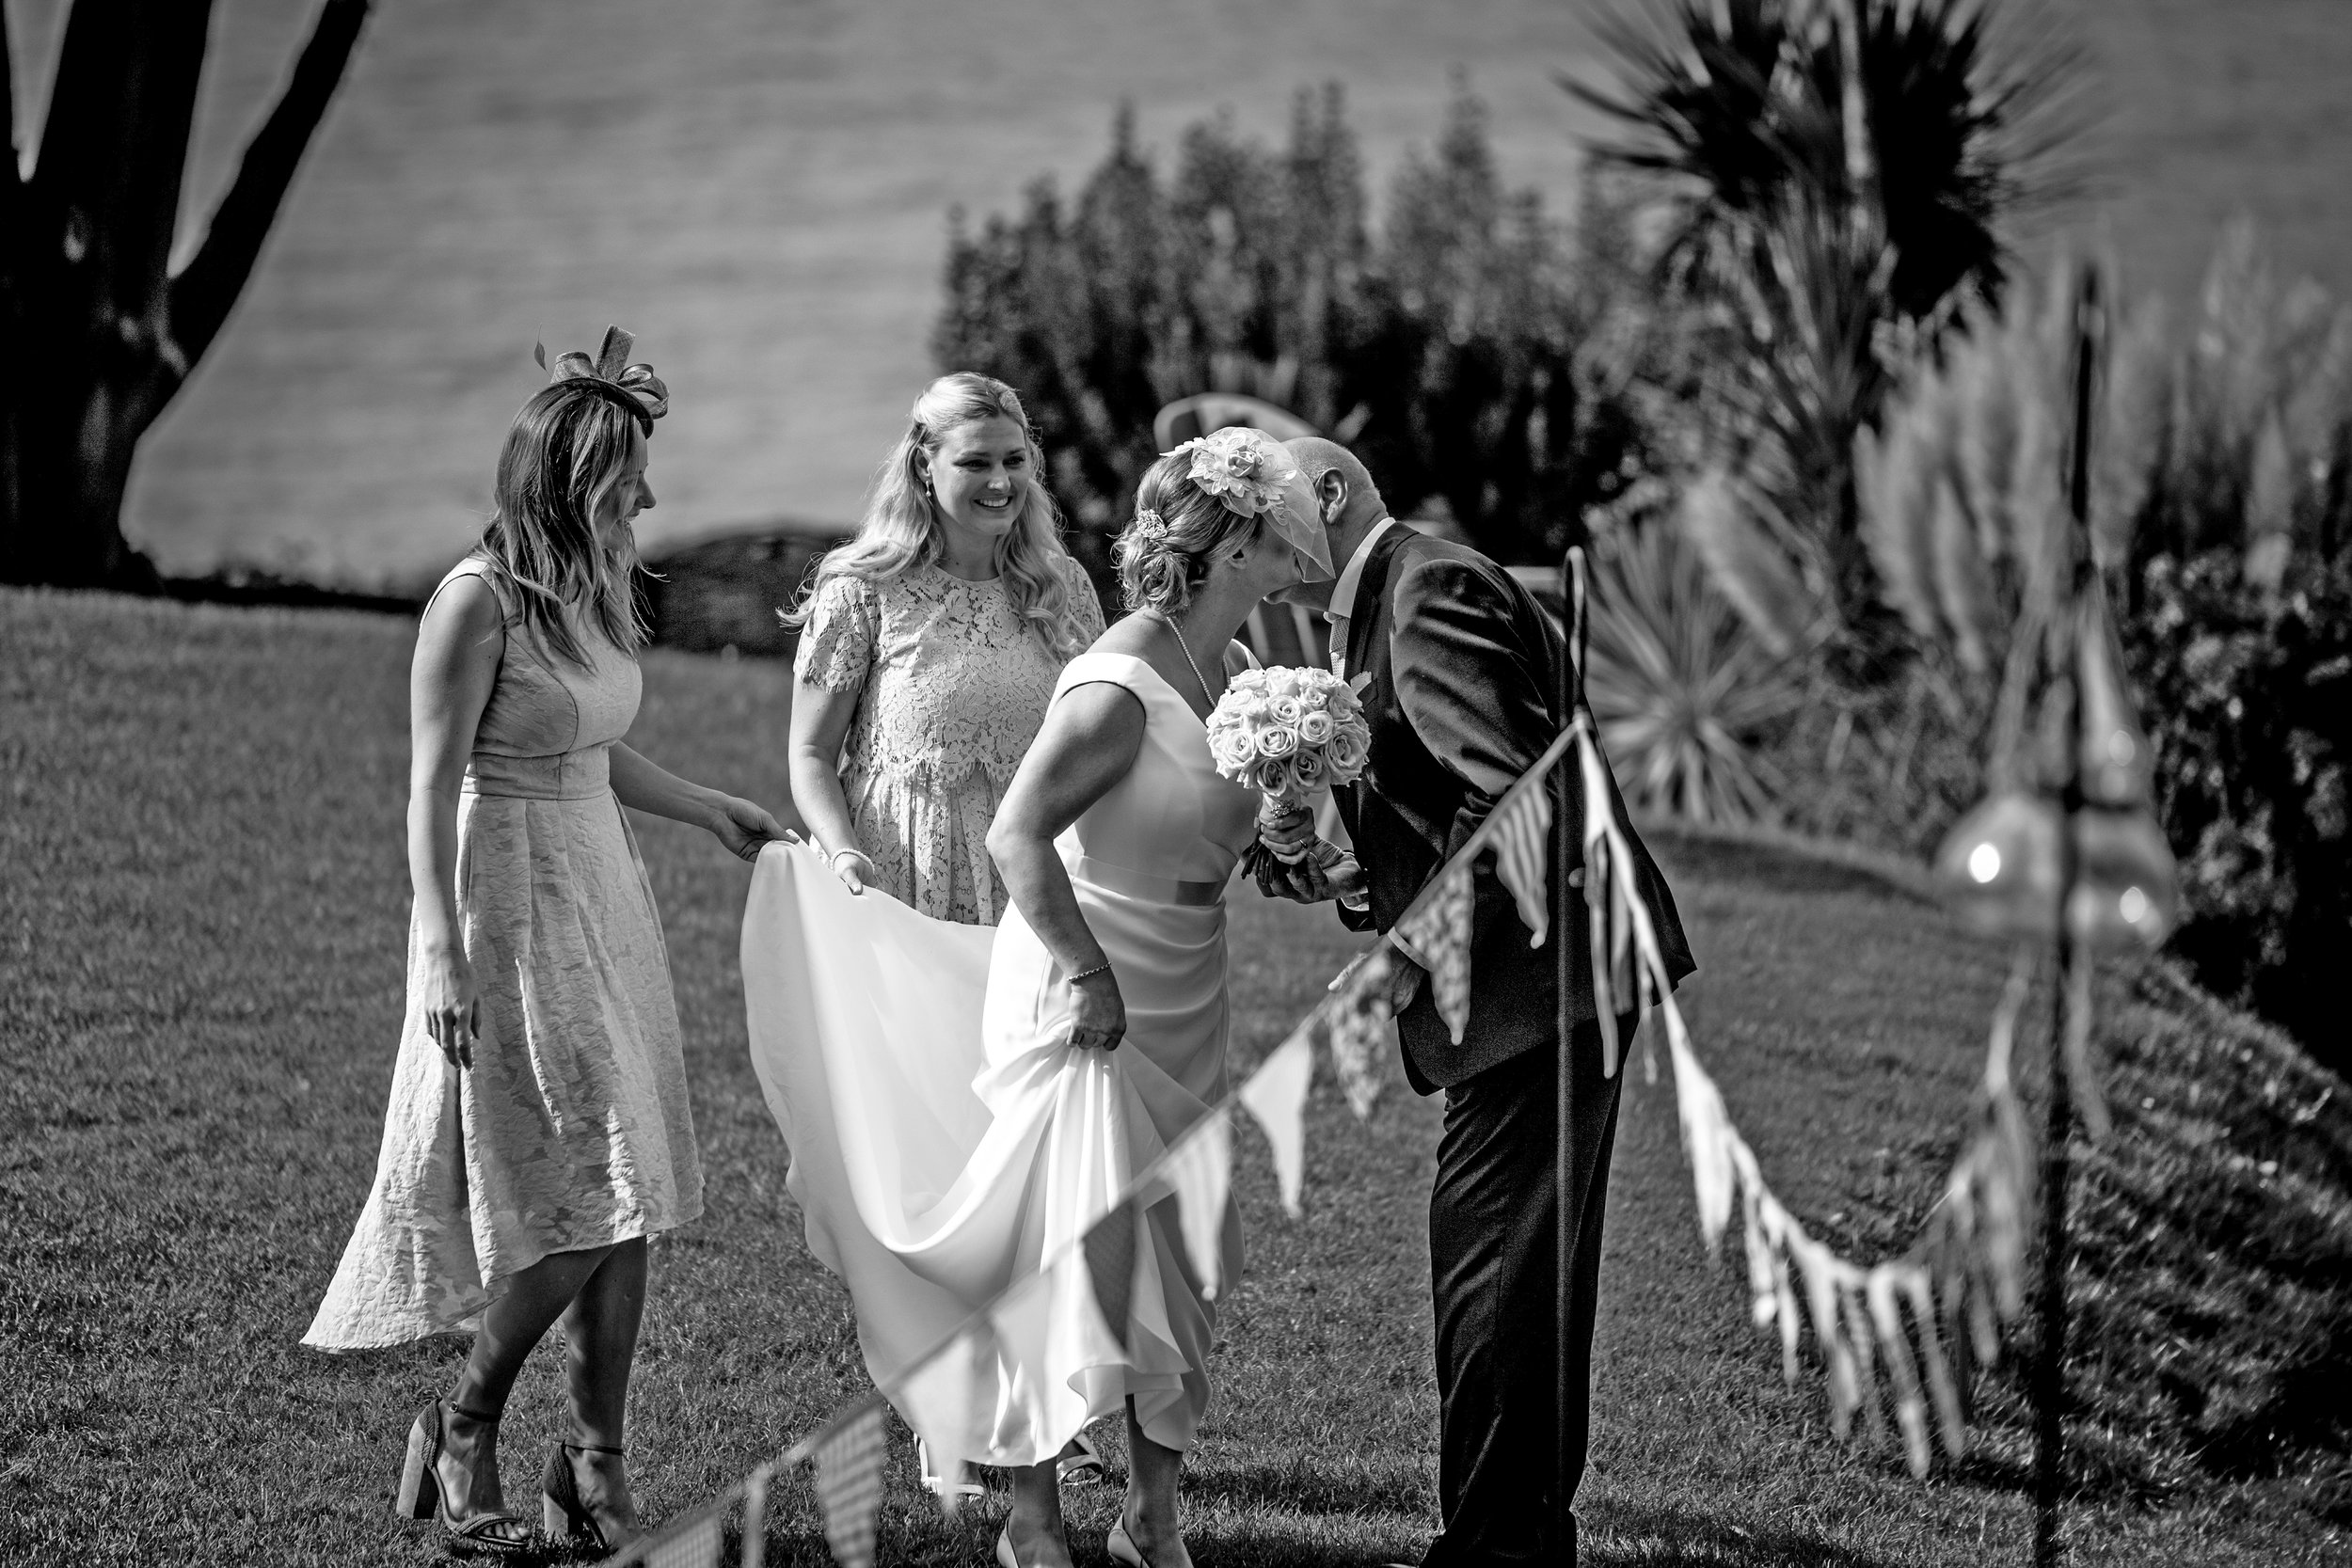 The father of the bride greets his daughter (The Bride) as she arrives for the wedding ceremony with her bridesmaids. Photo by Cambridge Reportage wedding photographer Nia & James The Photographers